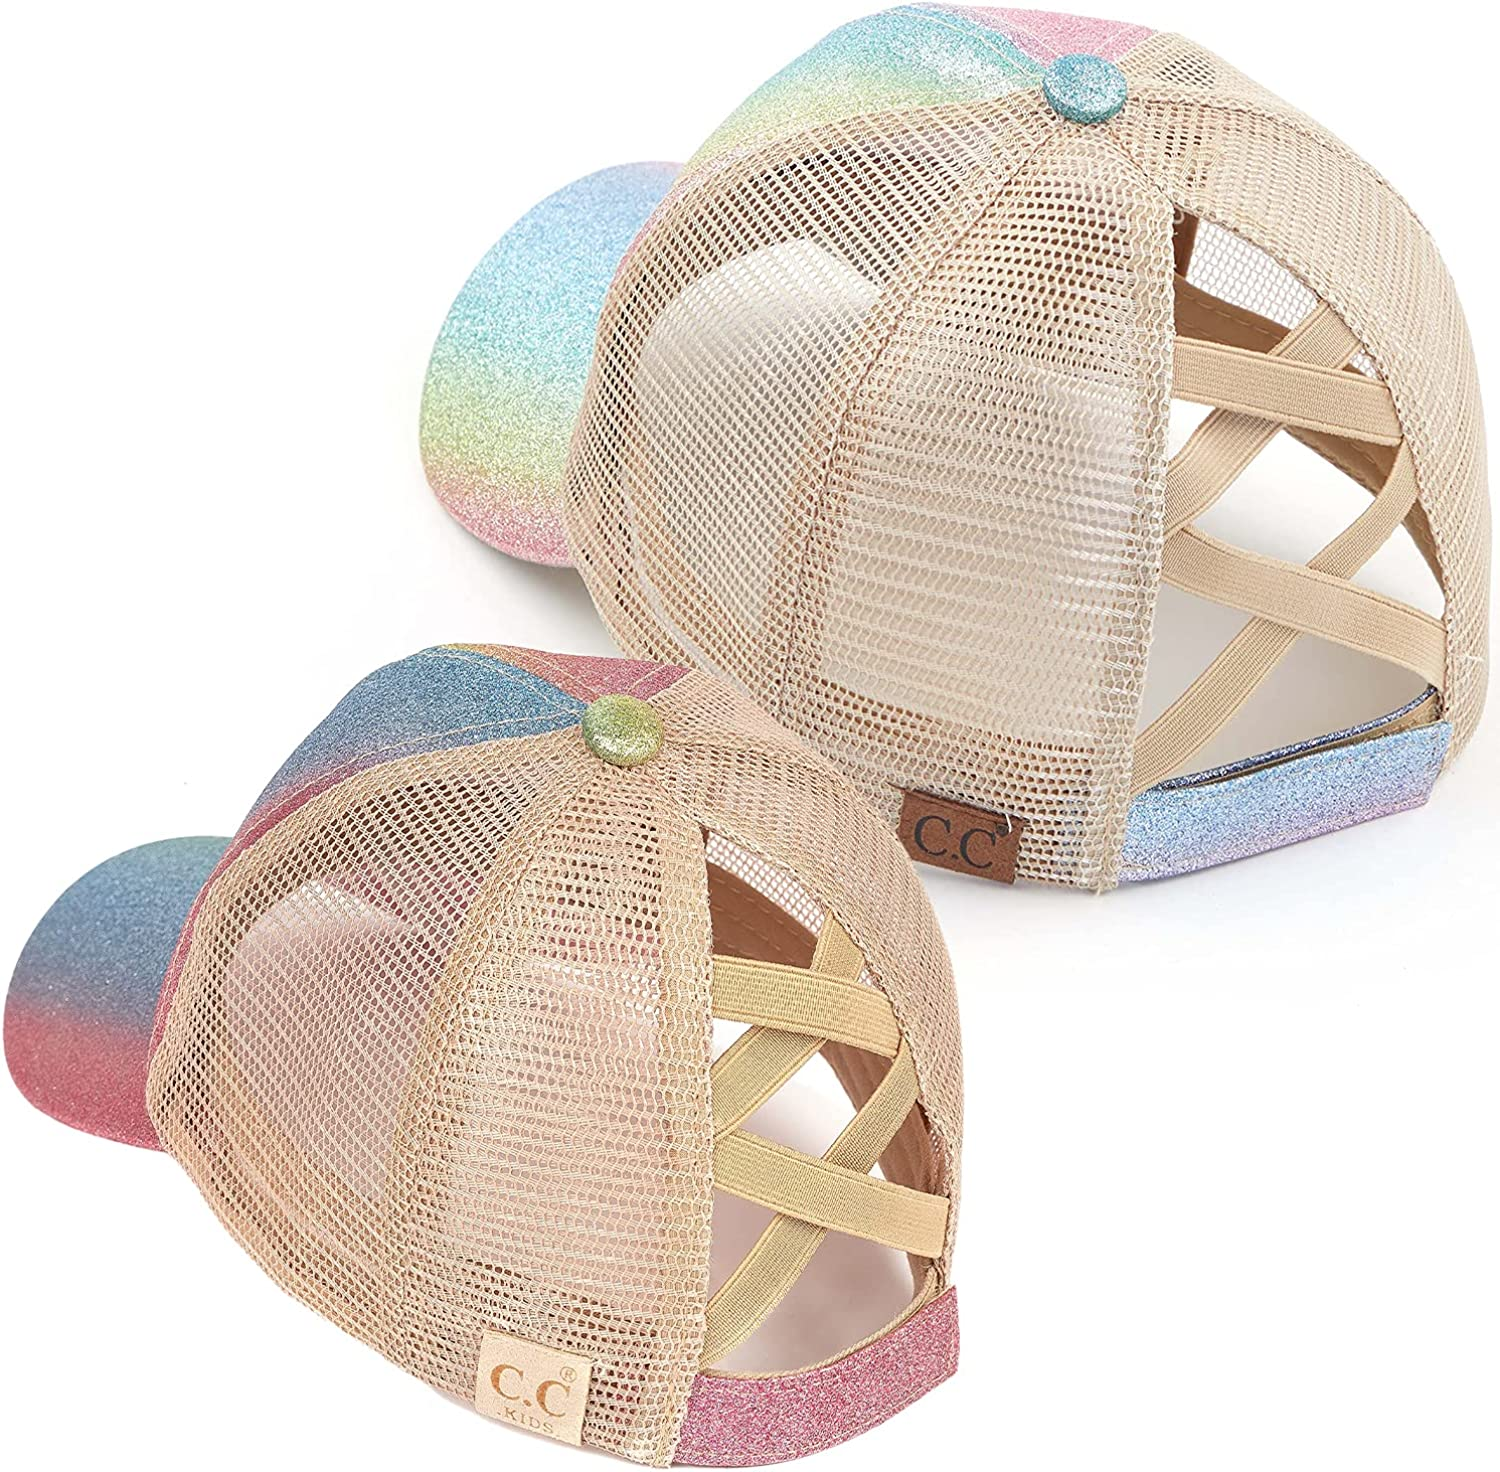 Mommy and me Criss Cross Hat Pink Ombre Daily bargain sale Glitter 2 Bundle: Multi Direct store